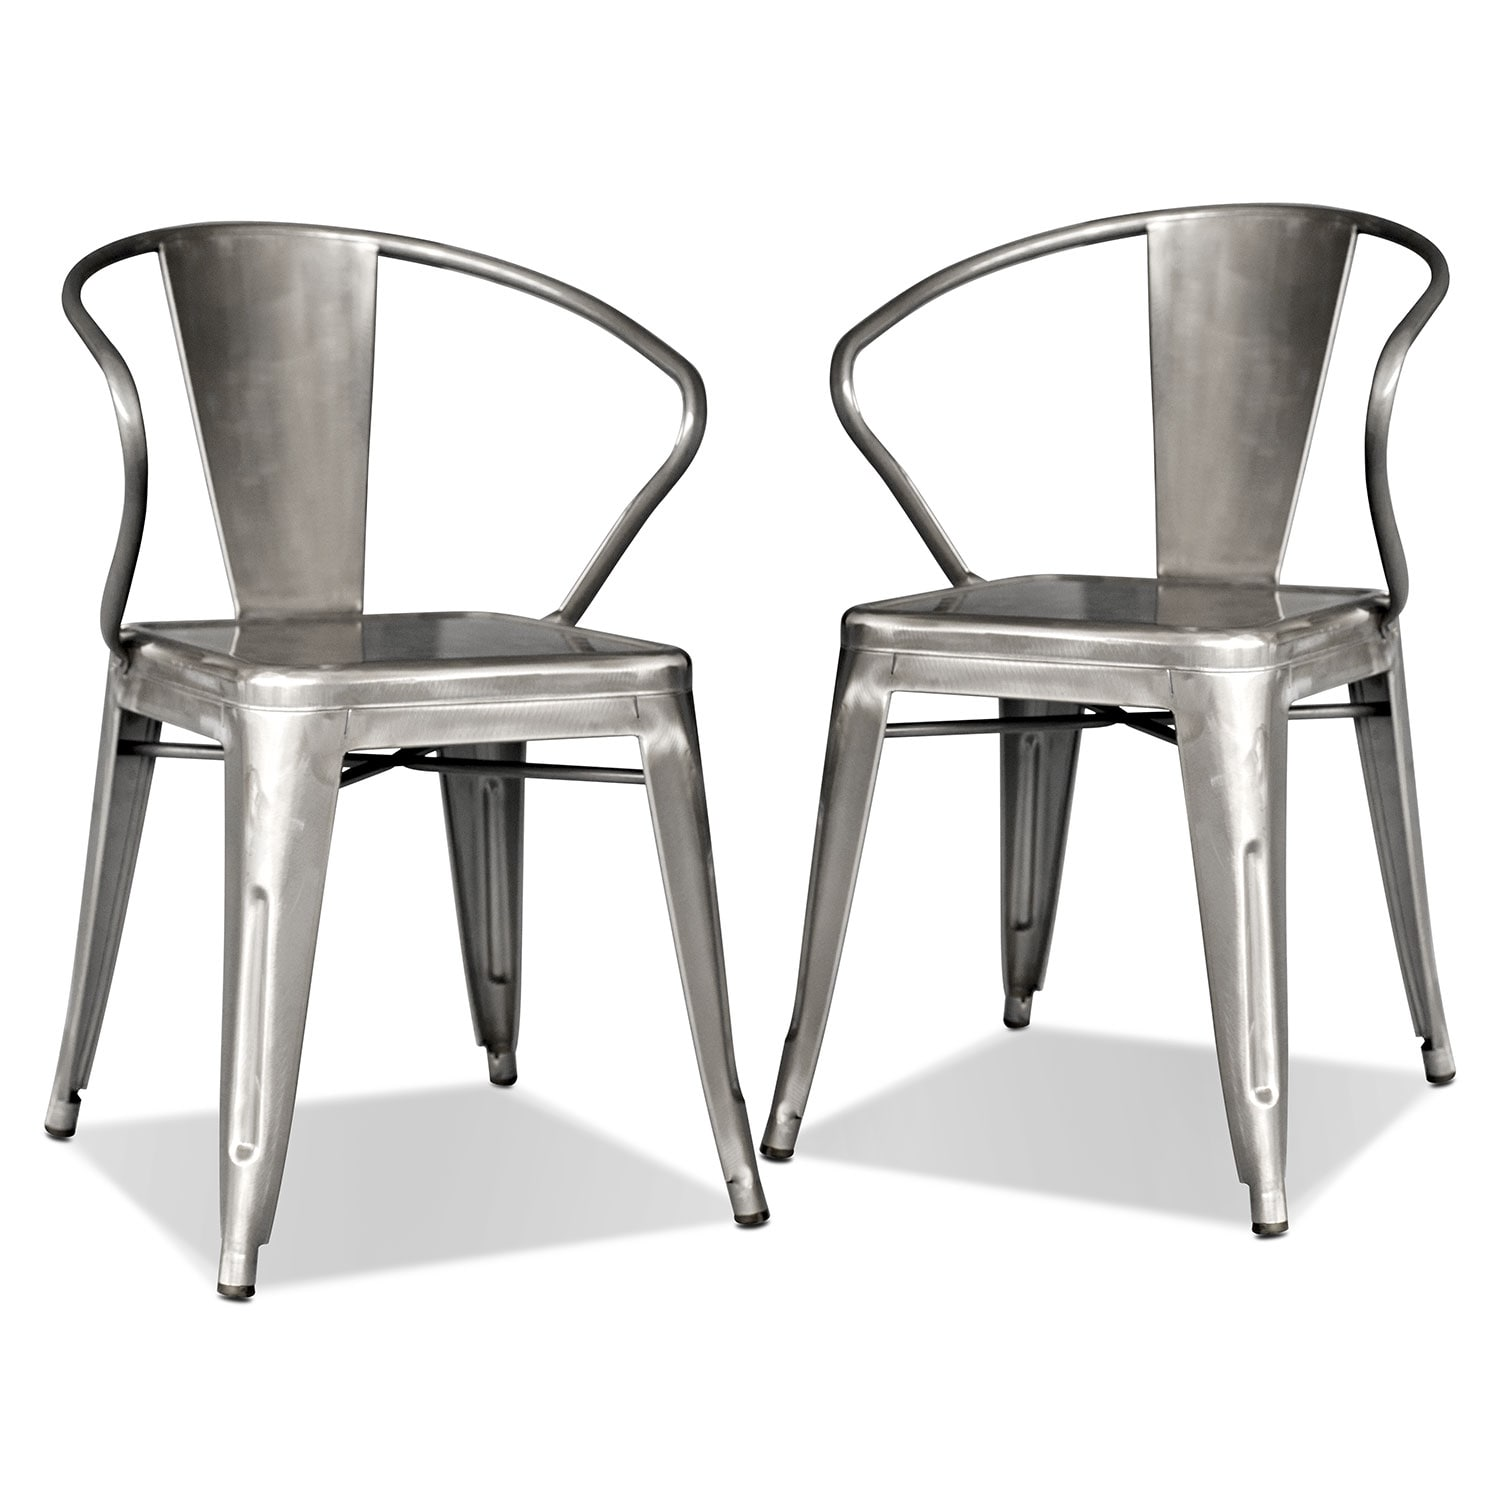 Dining Room Furniture - Squadron 2-Pack Arm Chairs - Polished Steel